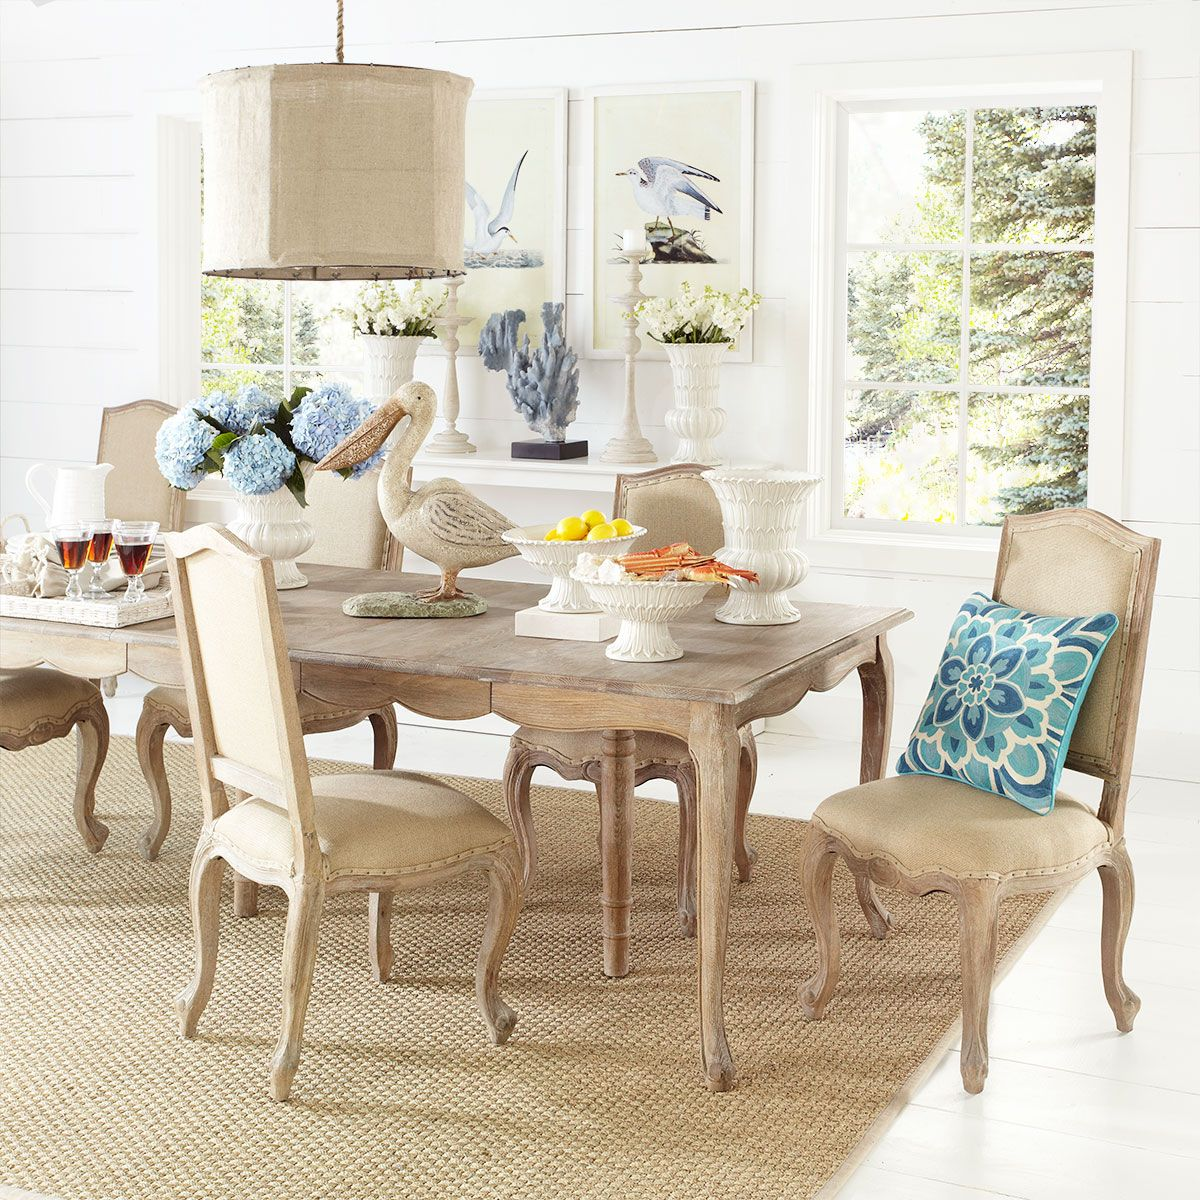 French Dining Room Chairs Google Search This Table French Country Dining Room French Country Dining Room Furniture French Country Dining Room Set